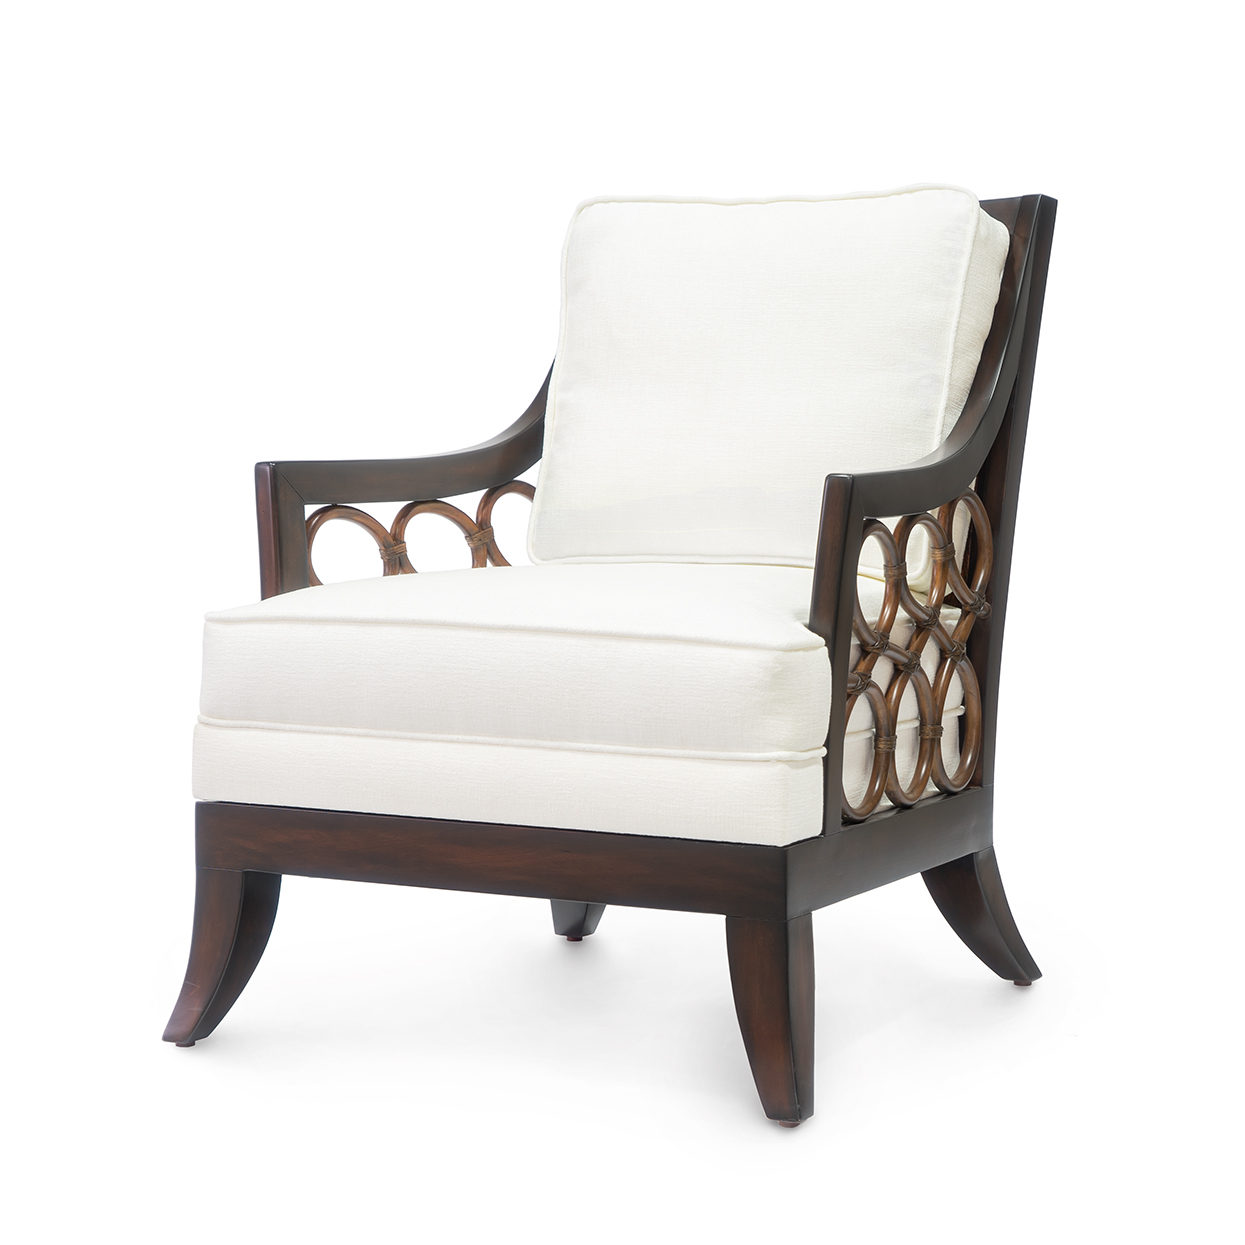 Description. CARLO LOUNGE CHAIR